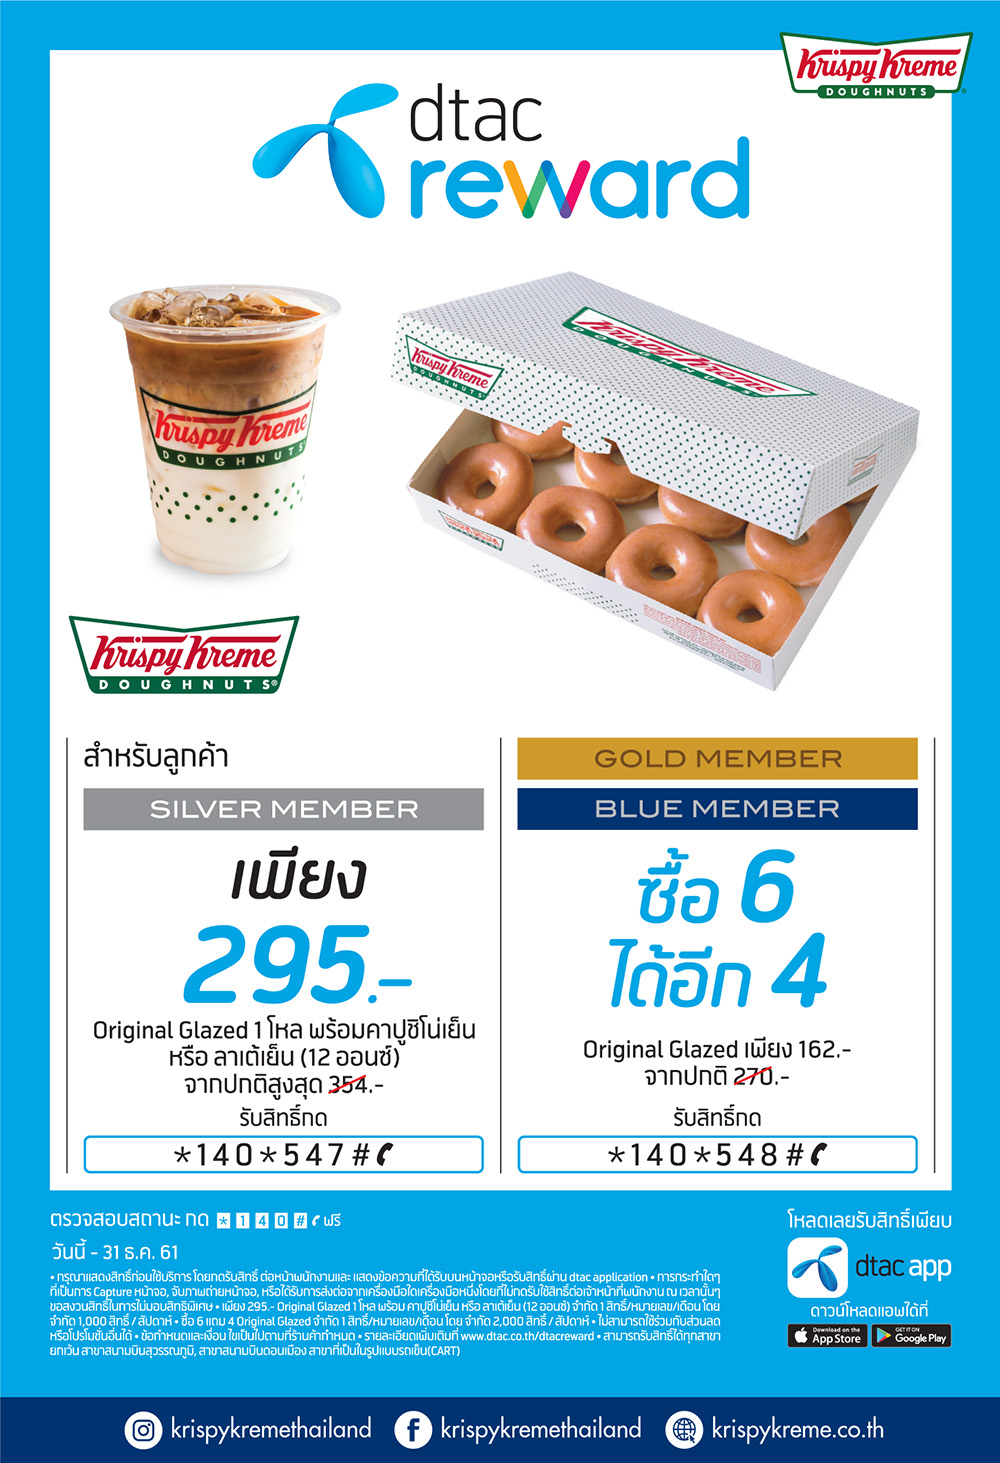 krispykreme_website_Dtac_full